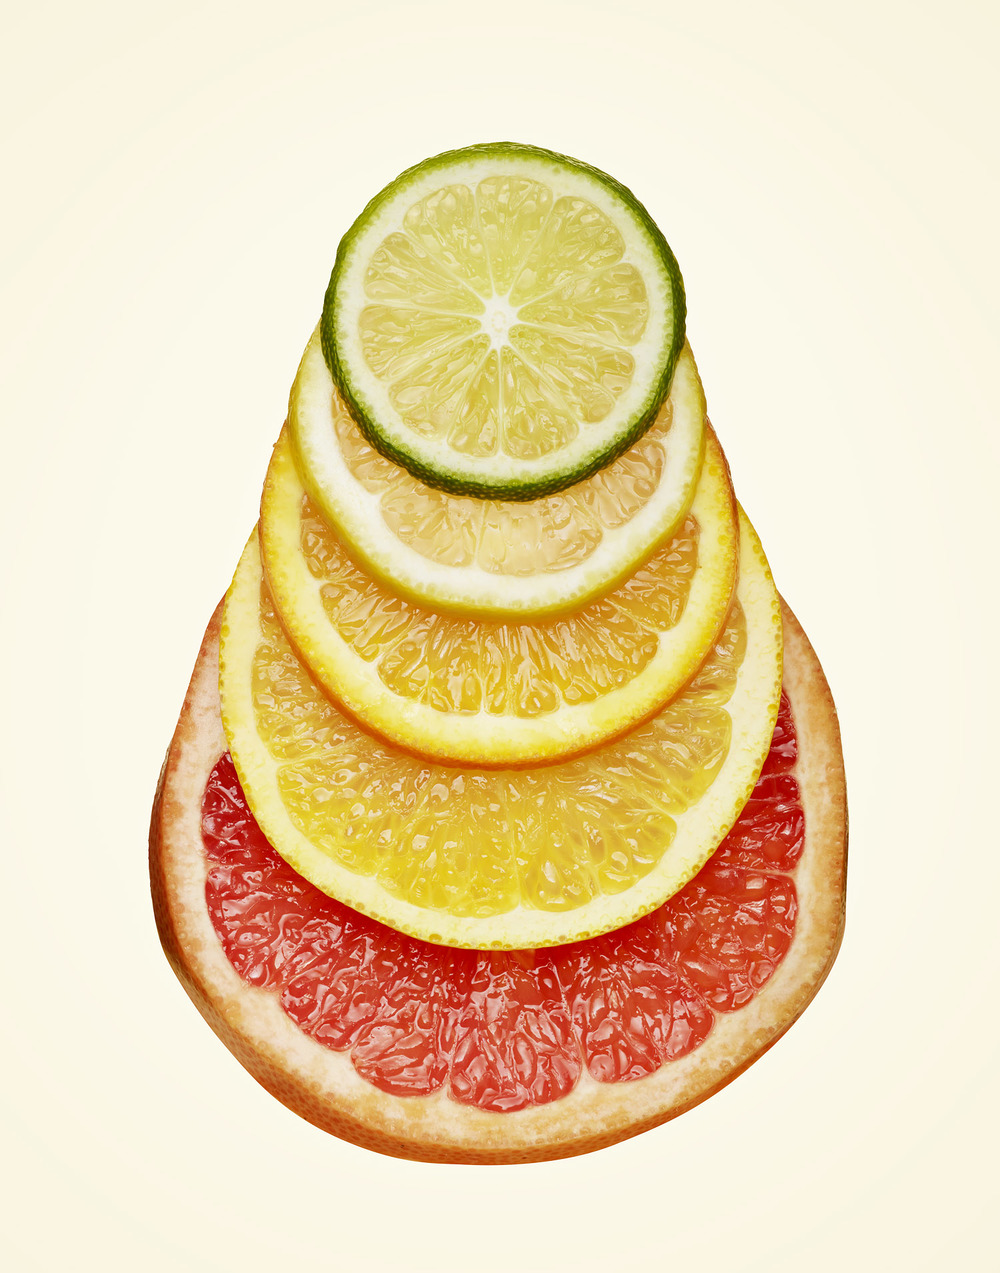 Citrus - Lime, Lemon, Orange, Grapefruit